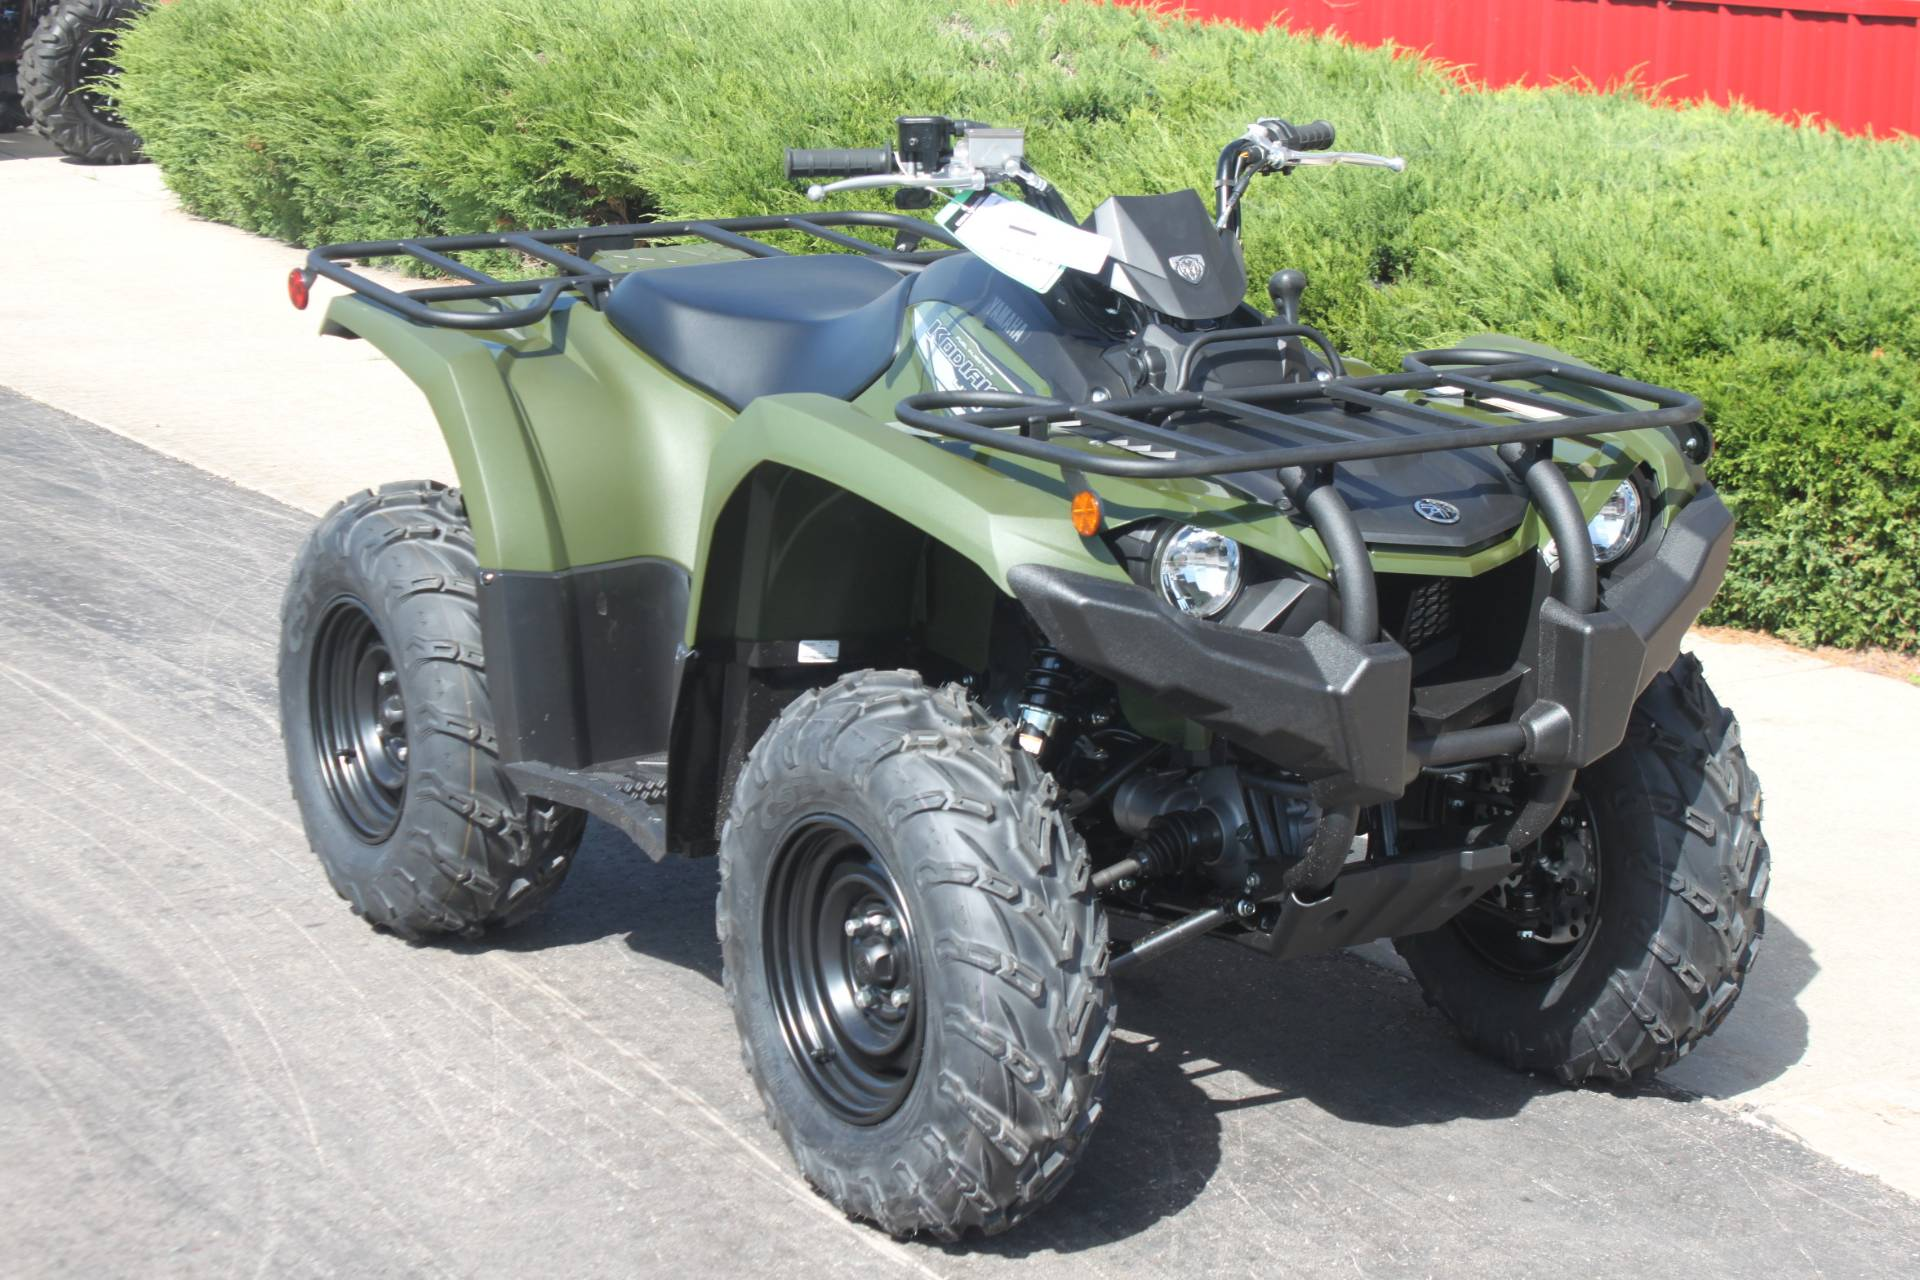 2020 Yamaha Kodiak 450 in Janesville, Wisconsin - Photo 2